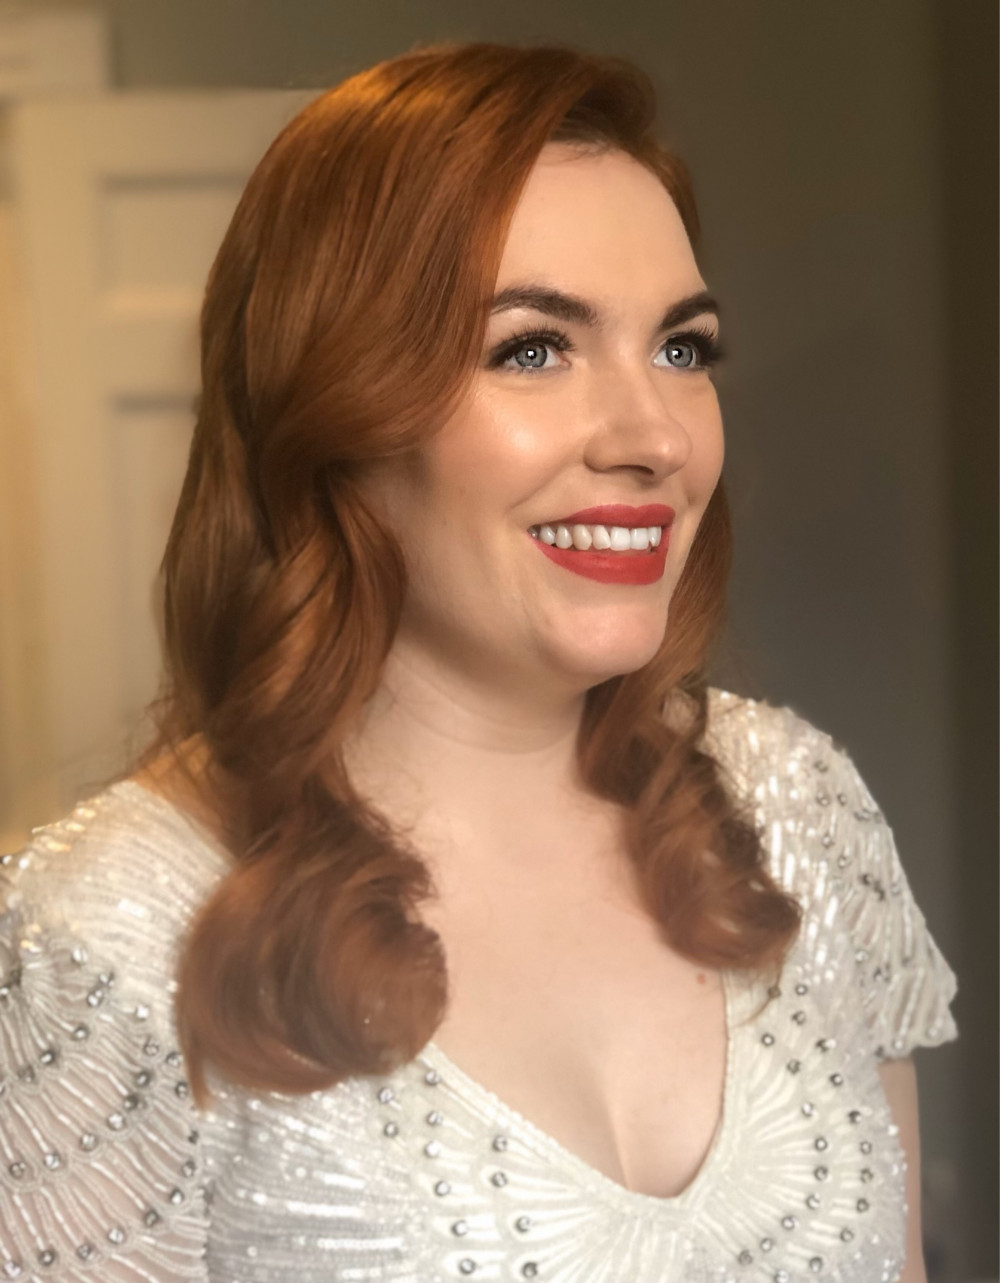 A beautiful, glamourous, modern vintage look. Hollywood waves and a red lip: this look was shared by Lisa Eldridge on her Instagram. - Make Me Bridal Artist: Lee O'D Makeup & Hair. Photography by: Lee O'D. #bridalhair #bridalmakeup #vintage #redhead #redlip #weddingmakeup #hollywoodwaves #weddinghair #hollywoodglamour #redhair #vintageglamour #modernvintage